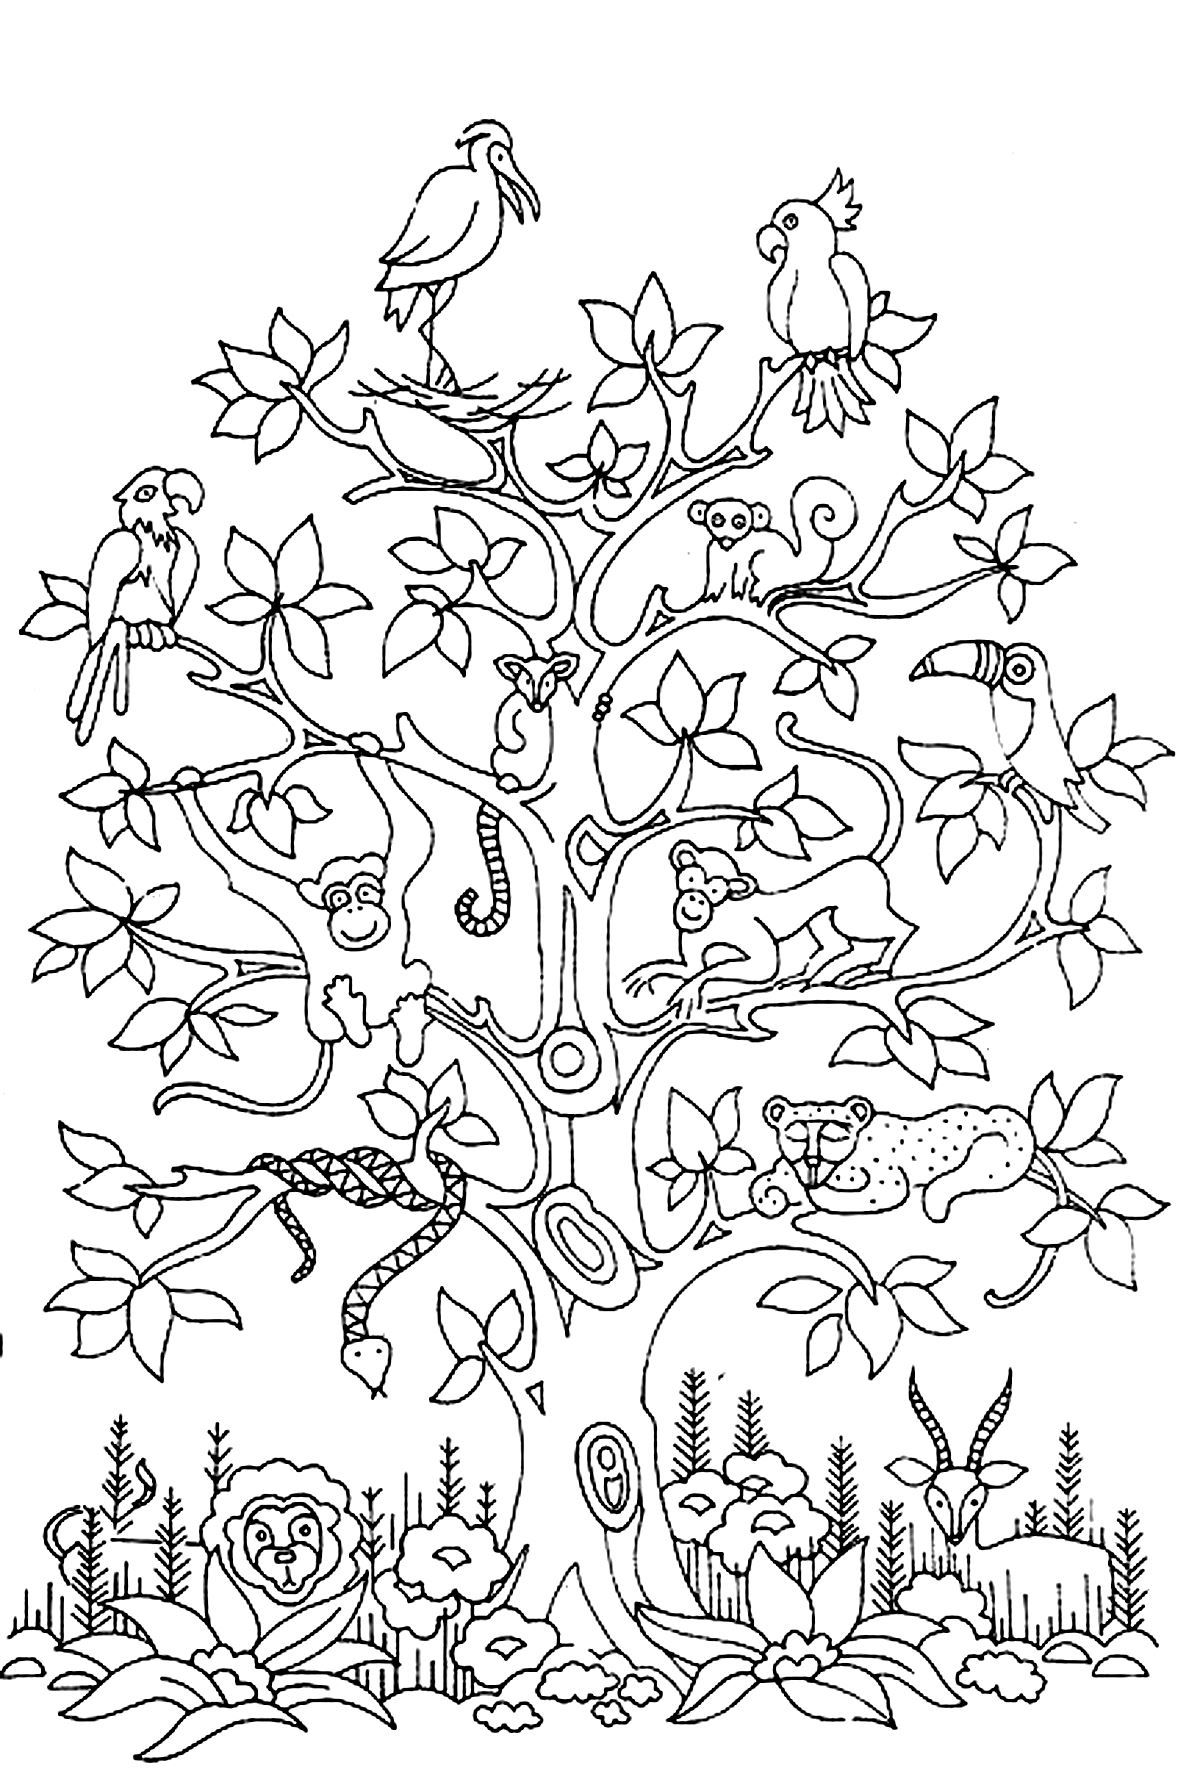 free coloring page «coloring-adult-difficult-tree-bird-butterflies ... - Coloring Pages Monkeys Trees